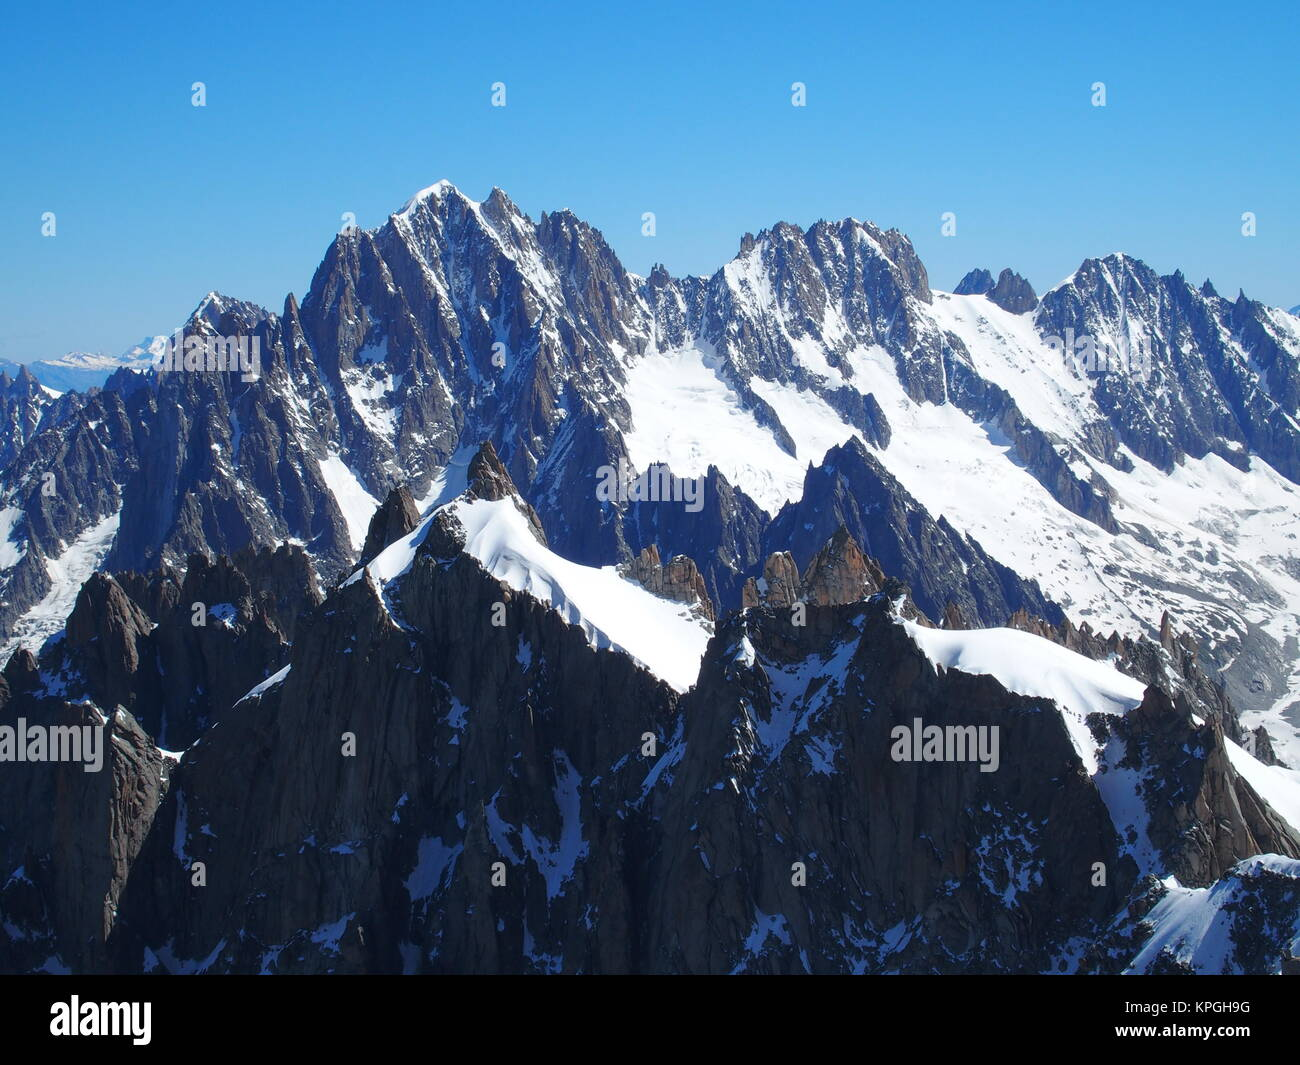 Alpine mountains range landscape in French ALPS seen from Aiguille du Midi at CHAMONIX MONT BLANC in FRANCE - Stock Image